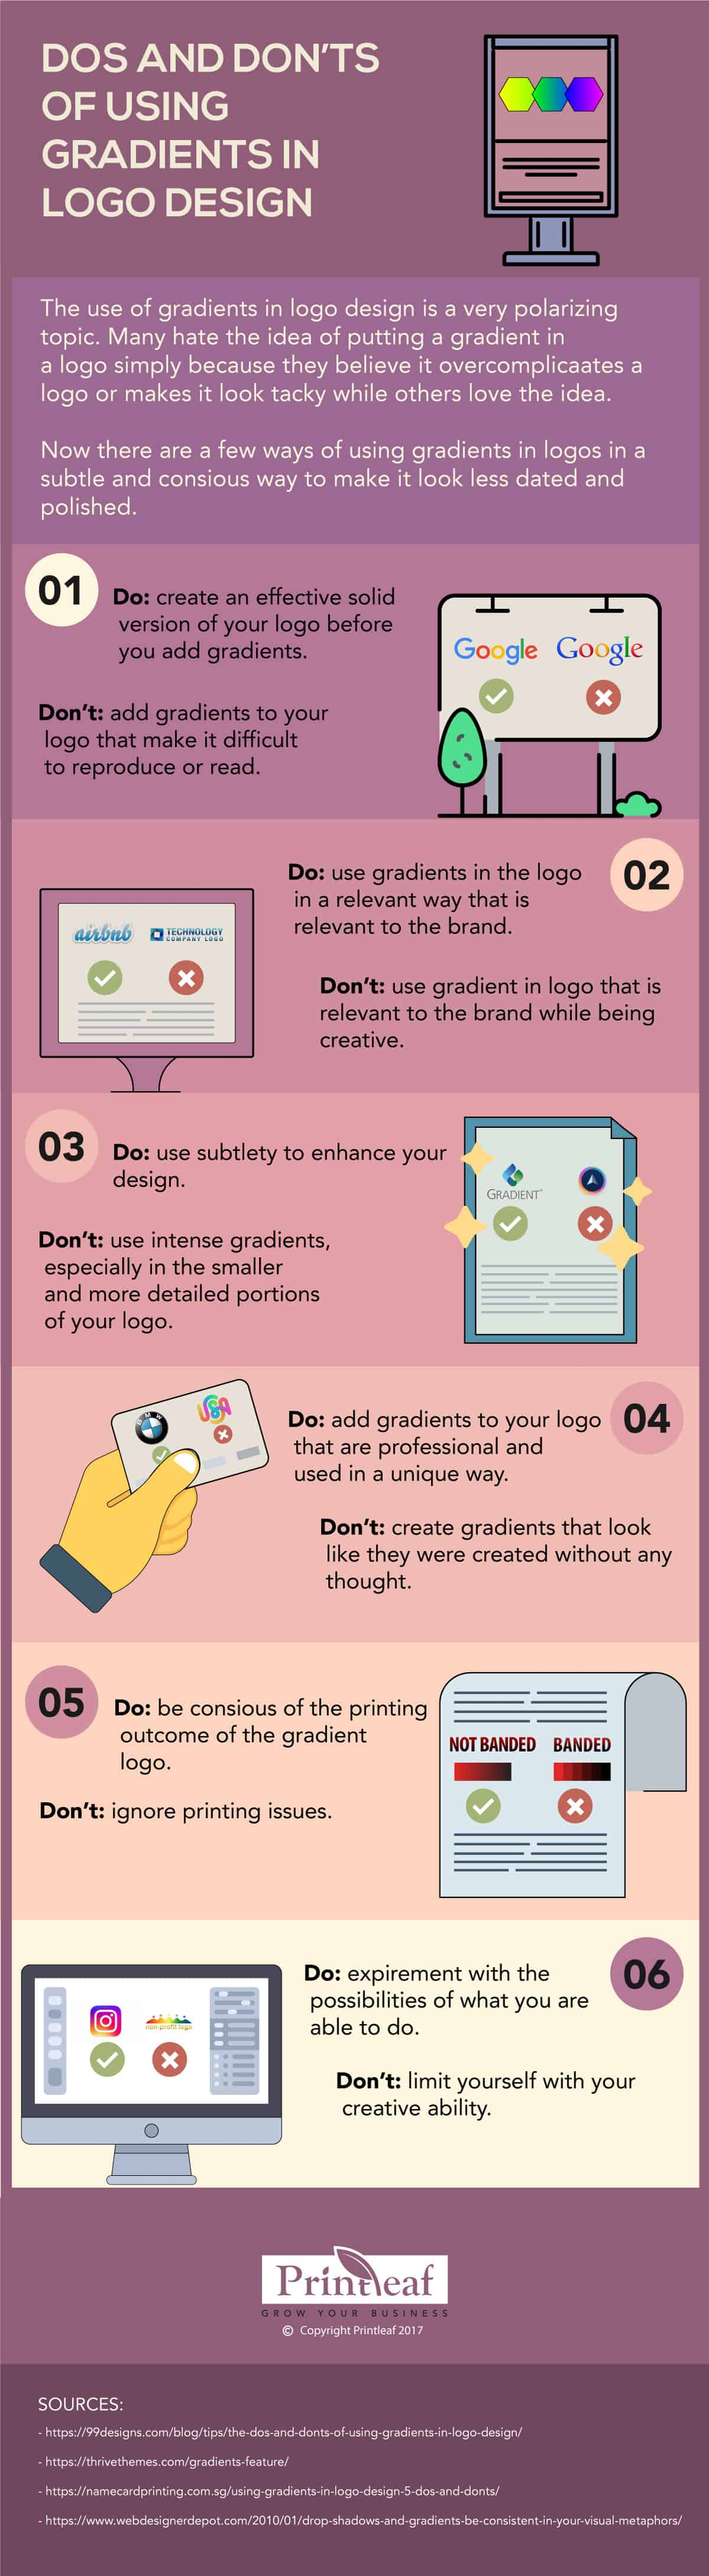 Gradients Do's and Dont's [Infographic]